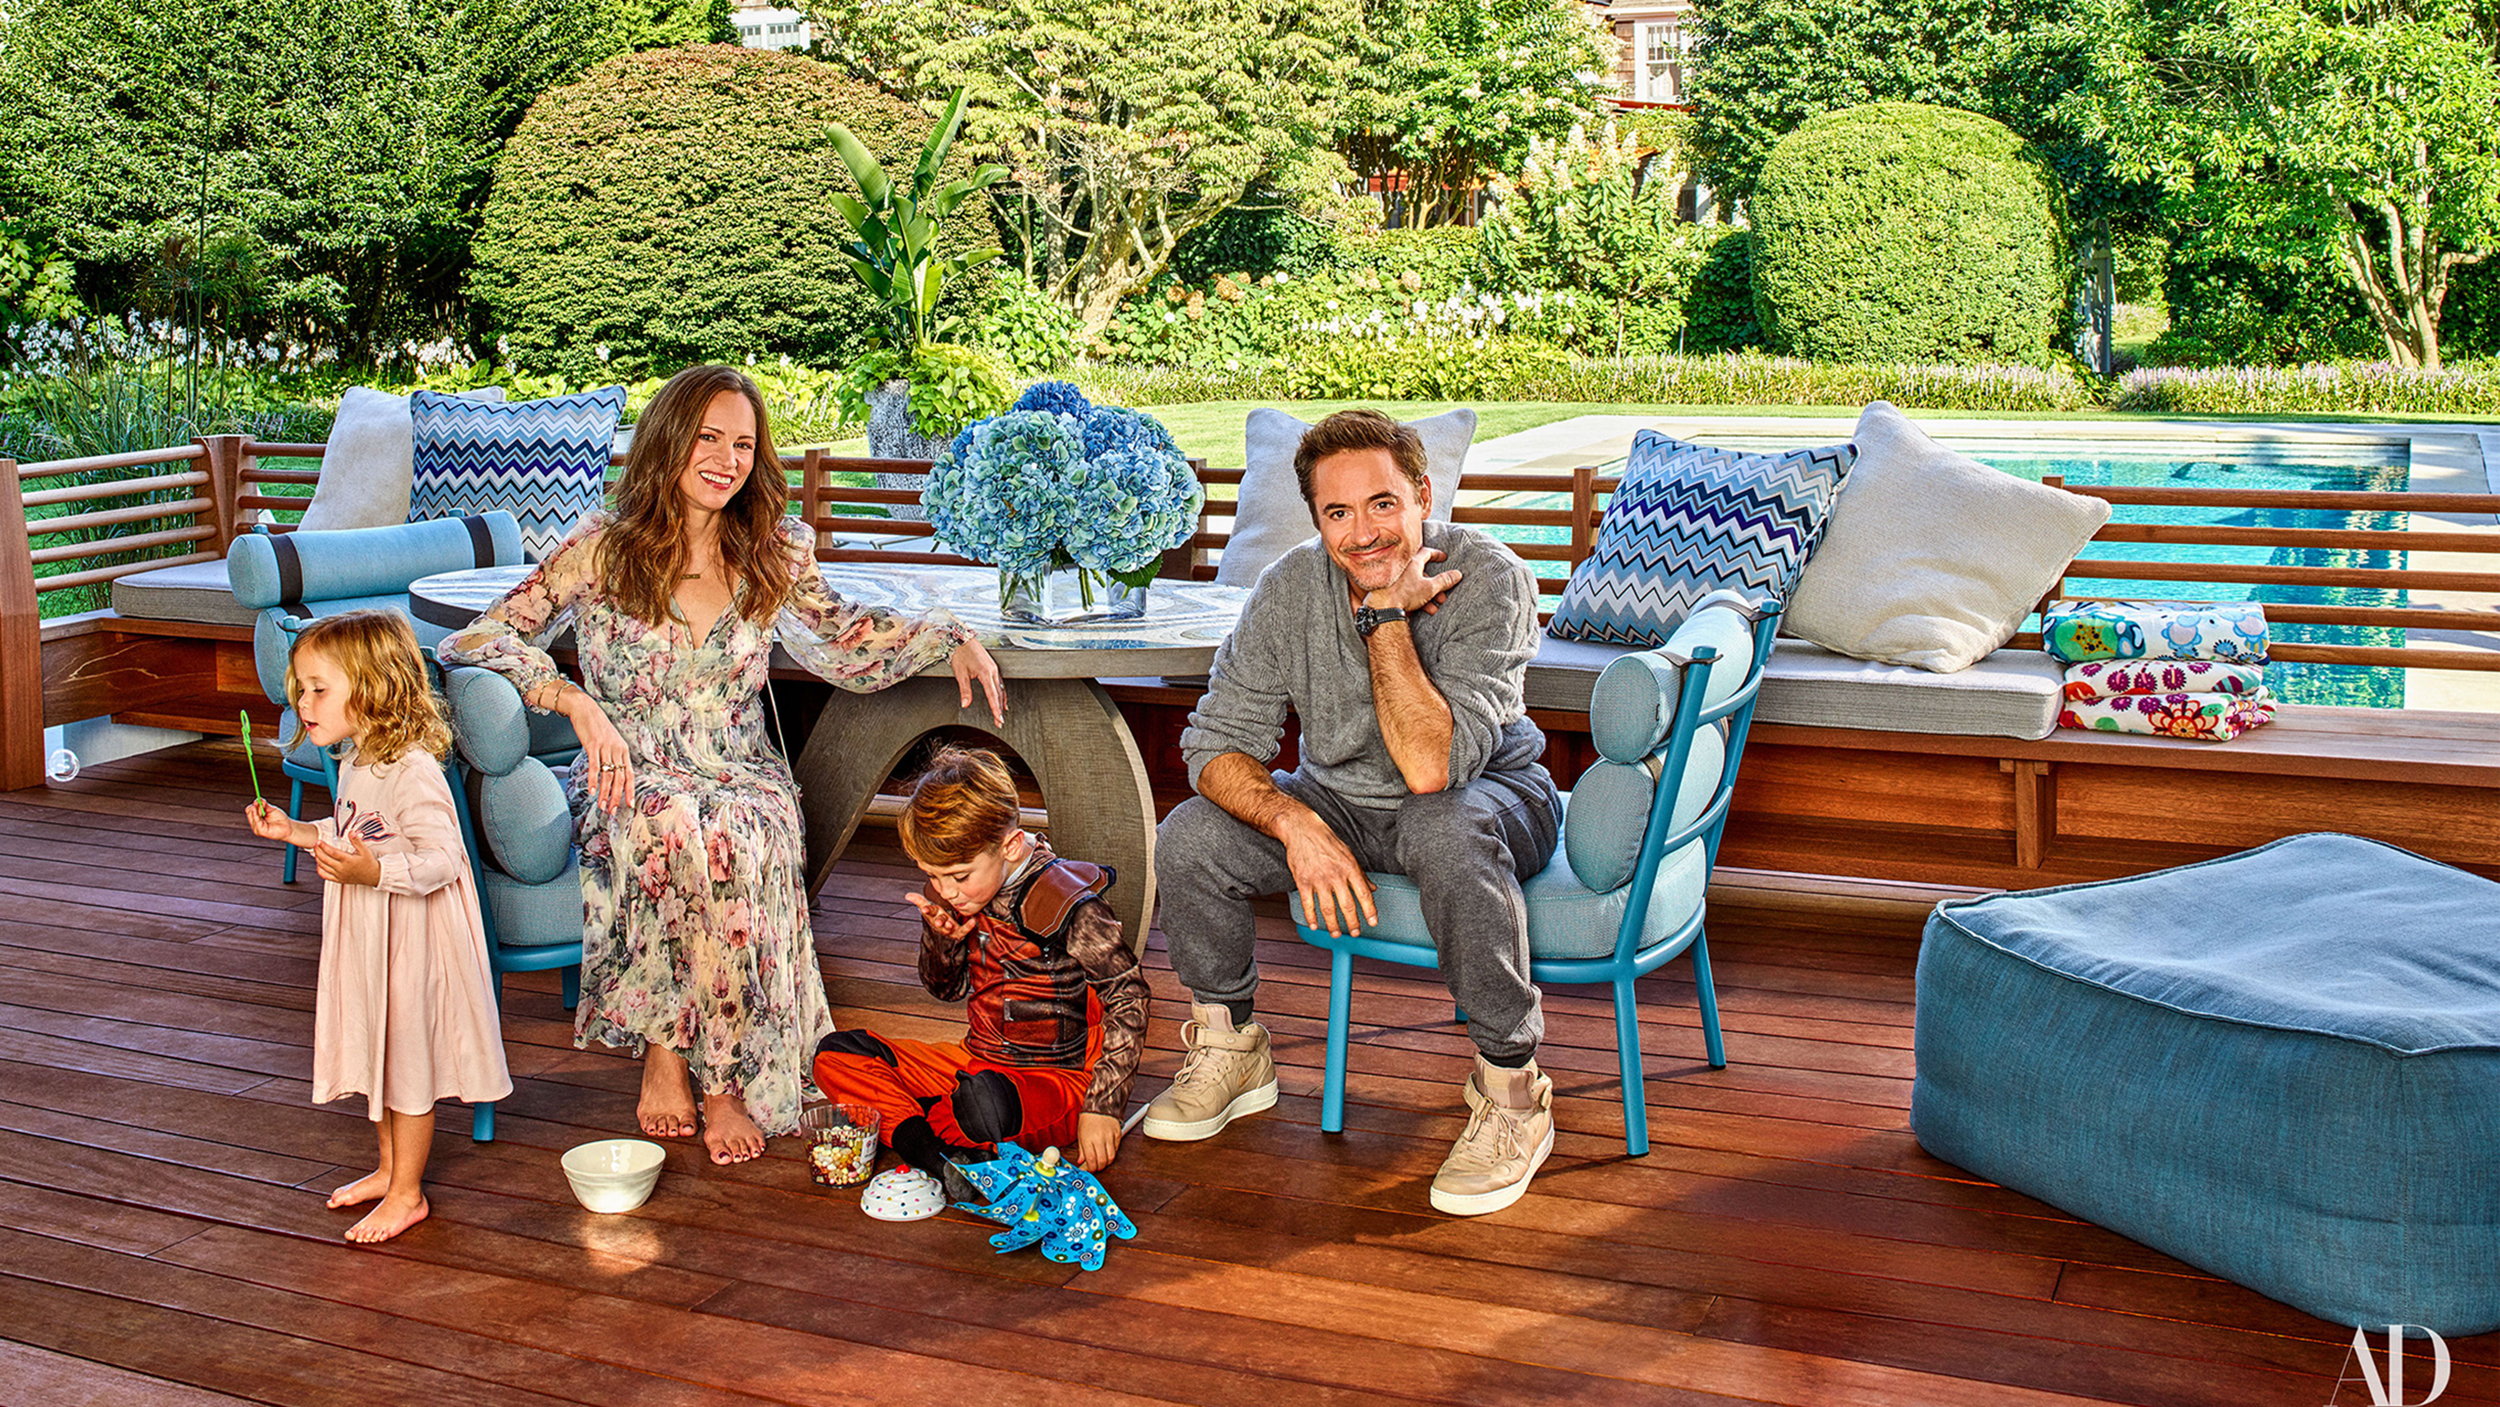 Robert Downey Jr Hamptons Home In Architectural Digest